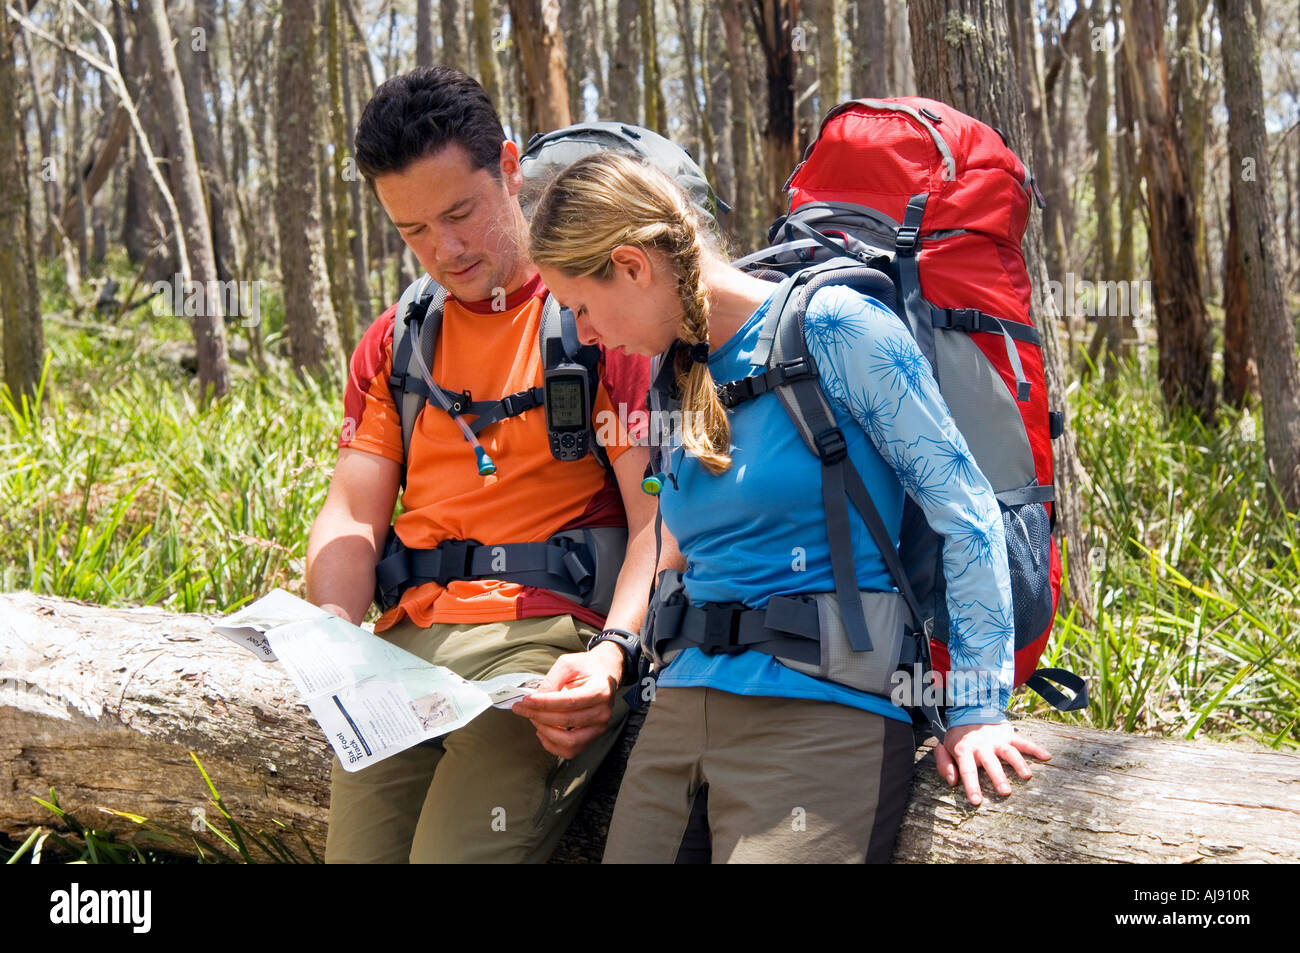 Topographical Map Stock Photos Topographical Map Stock Images Alamy - Where to get topo maps for hiking